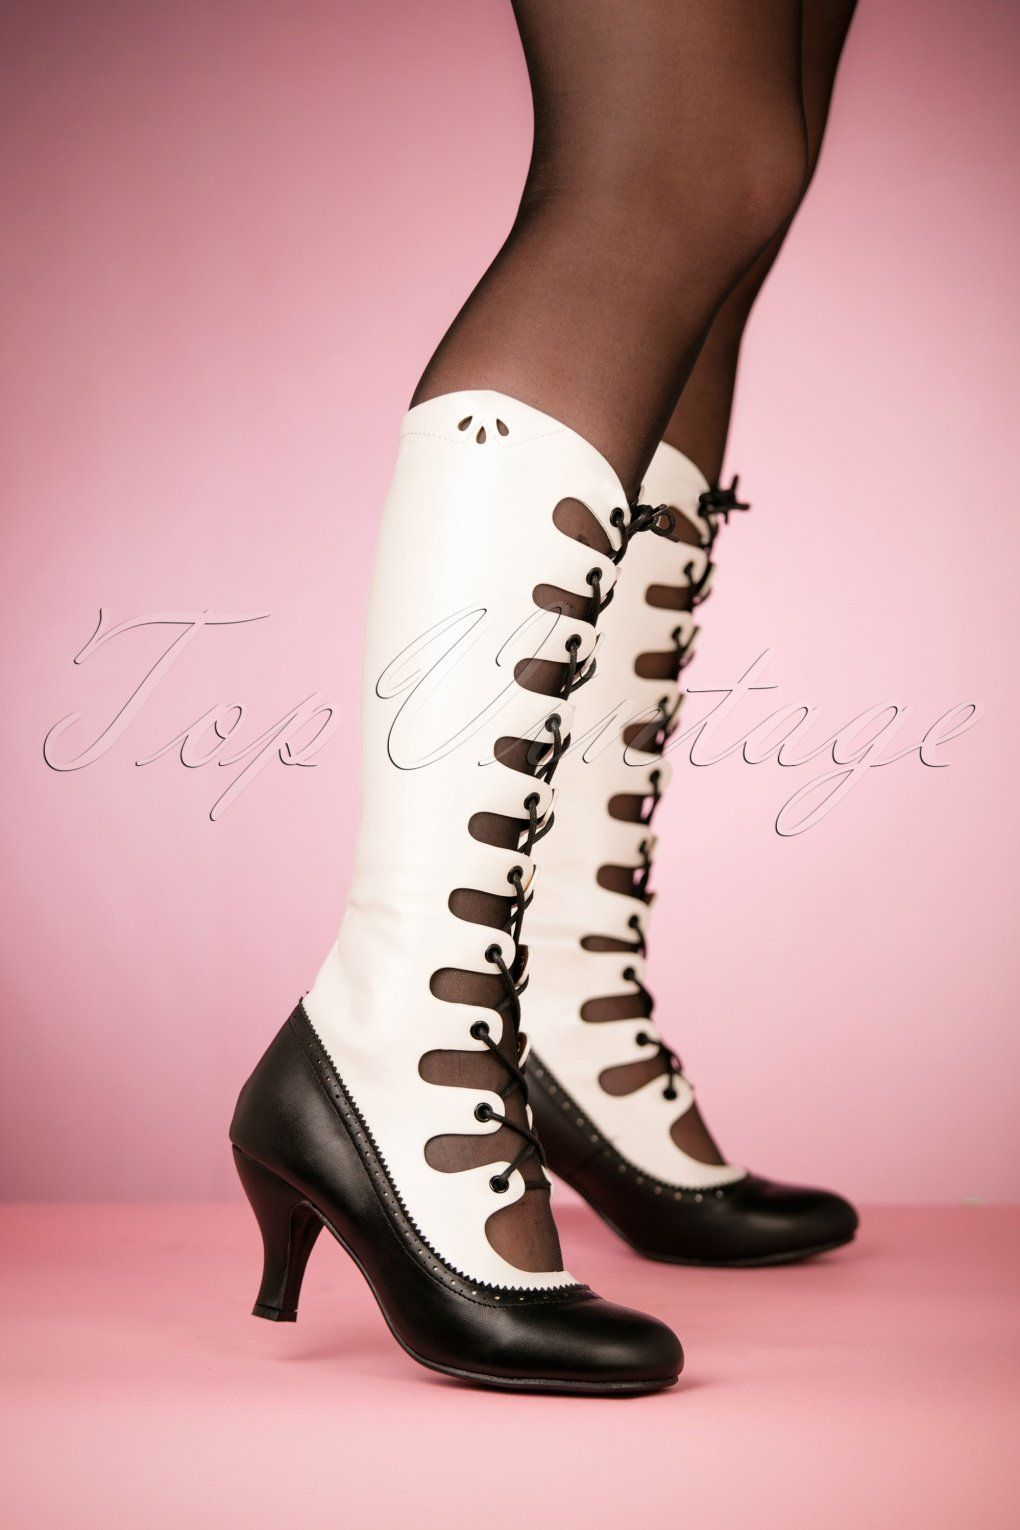 ed6891fe904 1910 - 20s Free Bird Boots in Black and White £73.29 AT vintagedancer